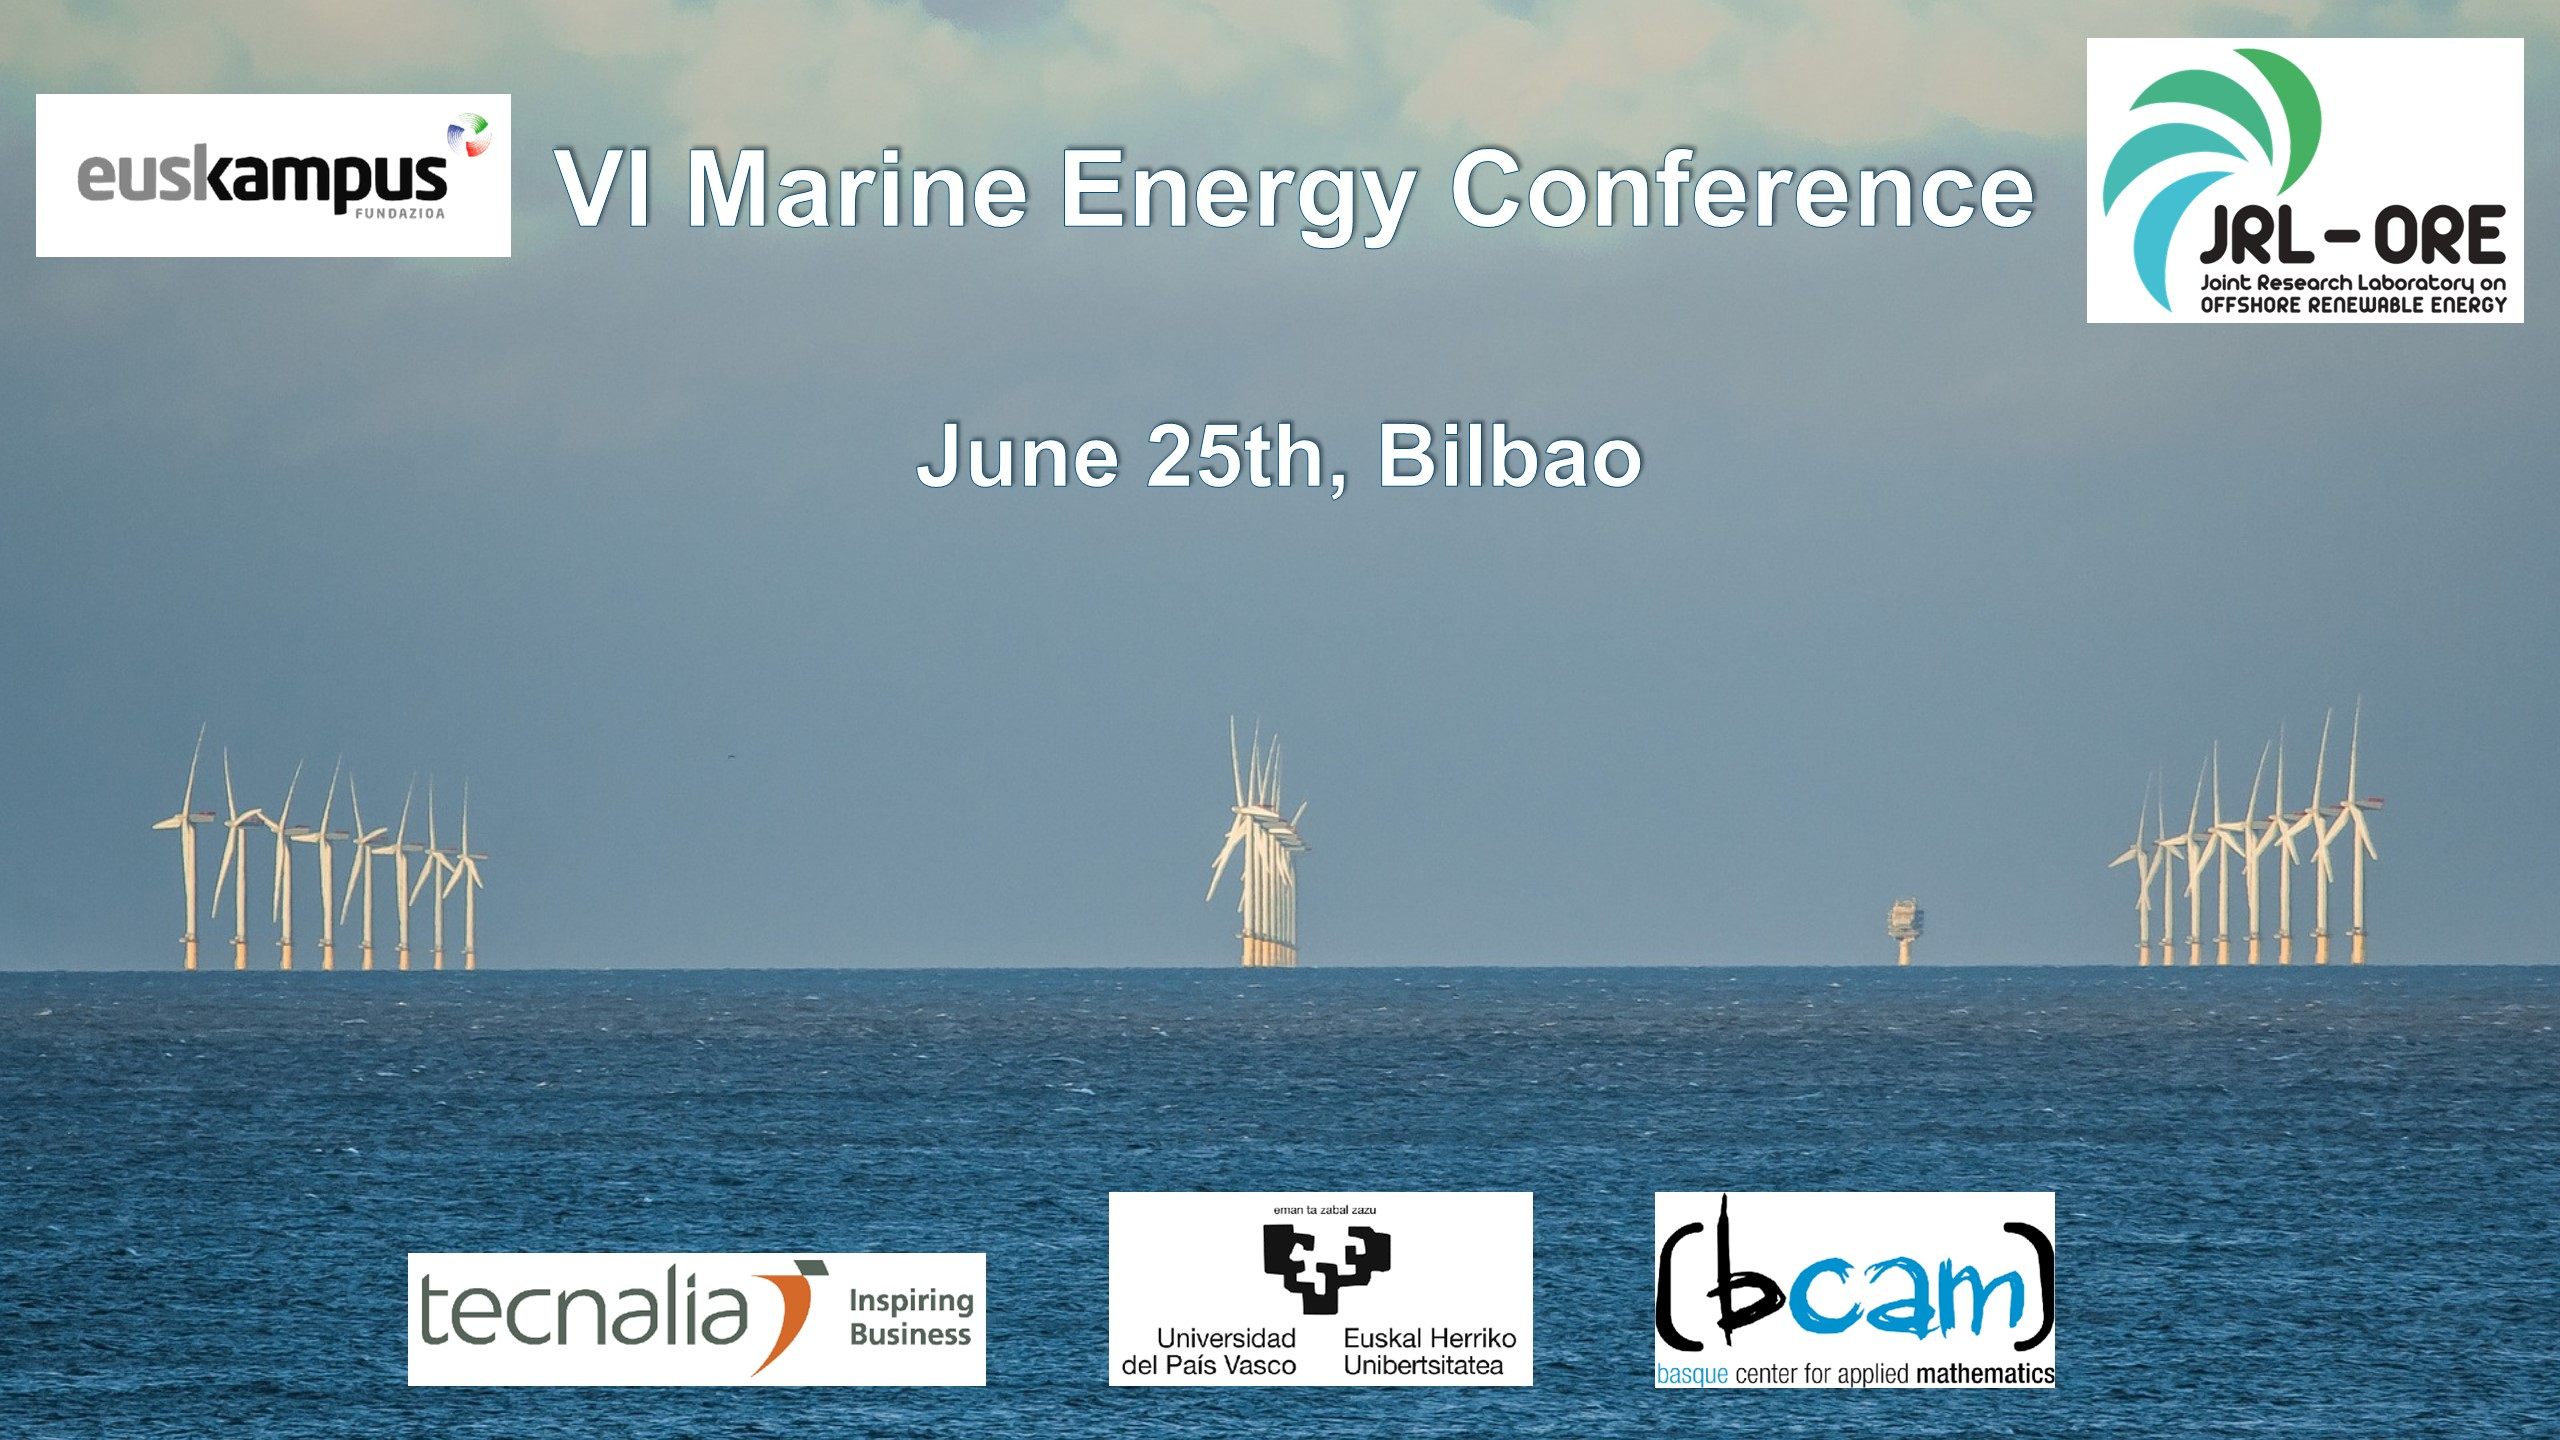 The VI Marine Energy Conference will be held on June 25th with new contents